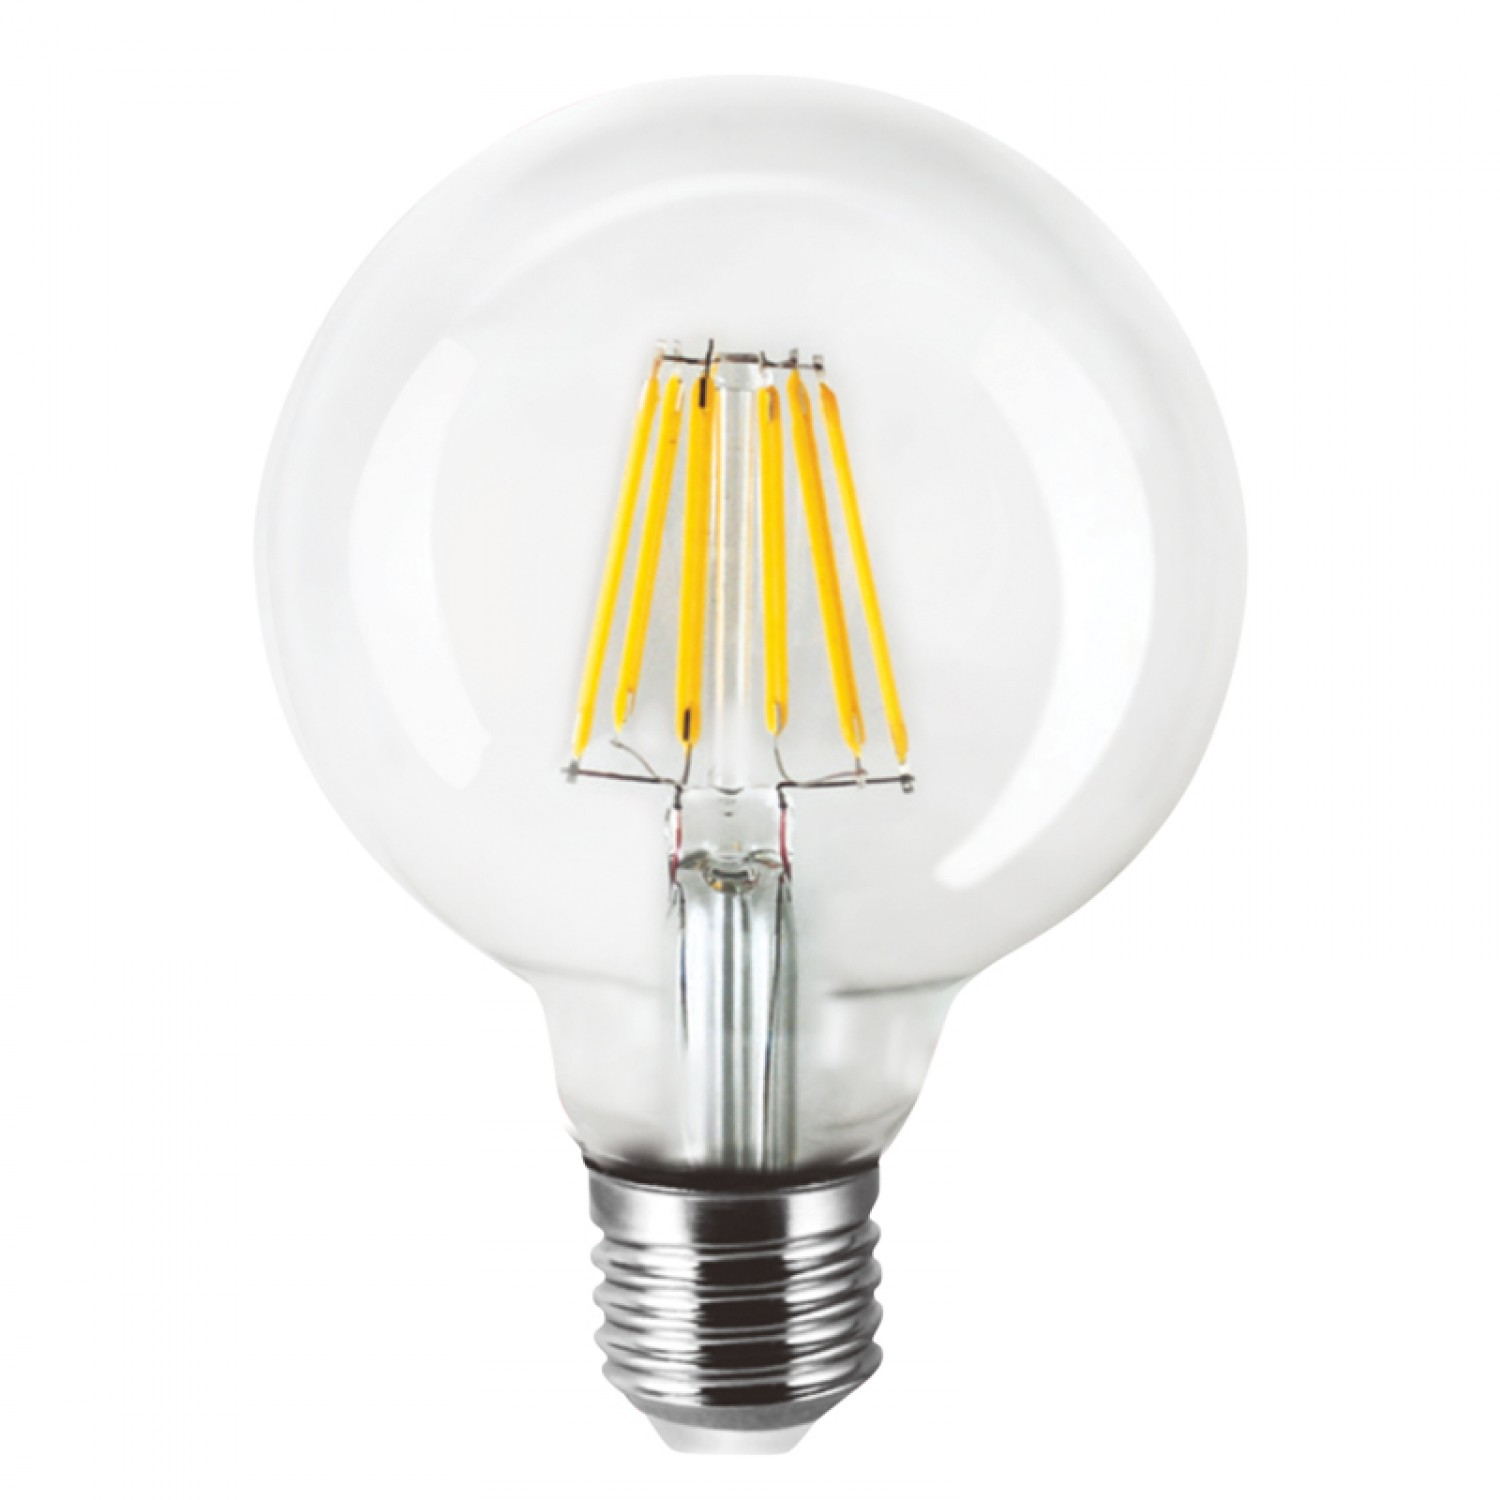 Ε27 LED Filament G80 8watt